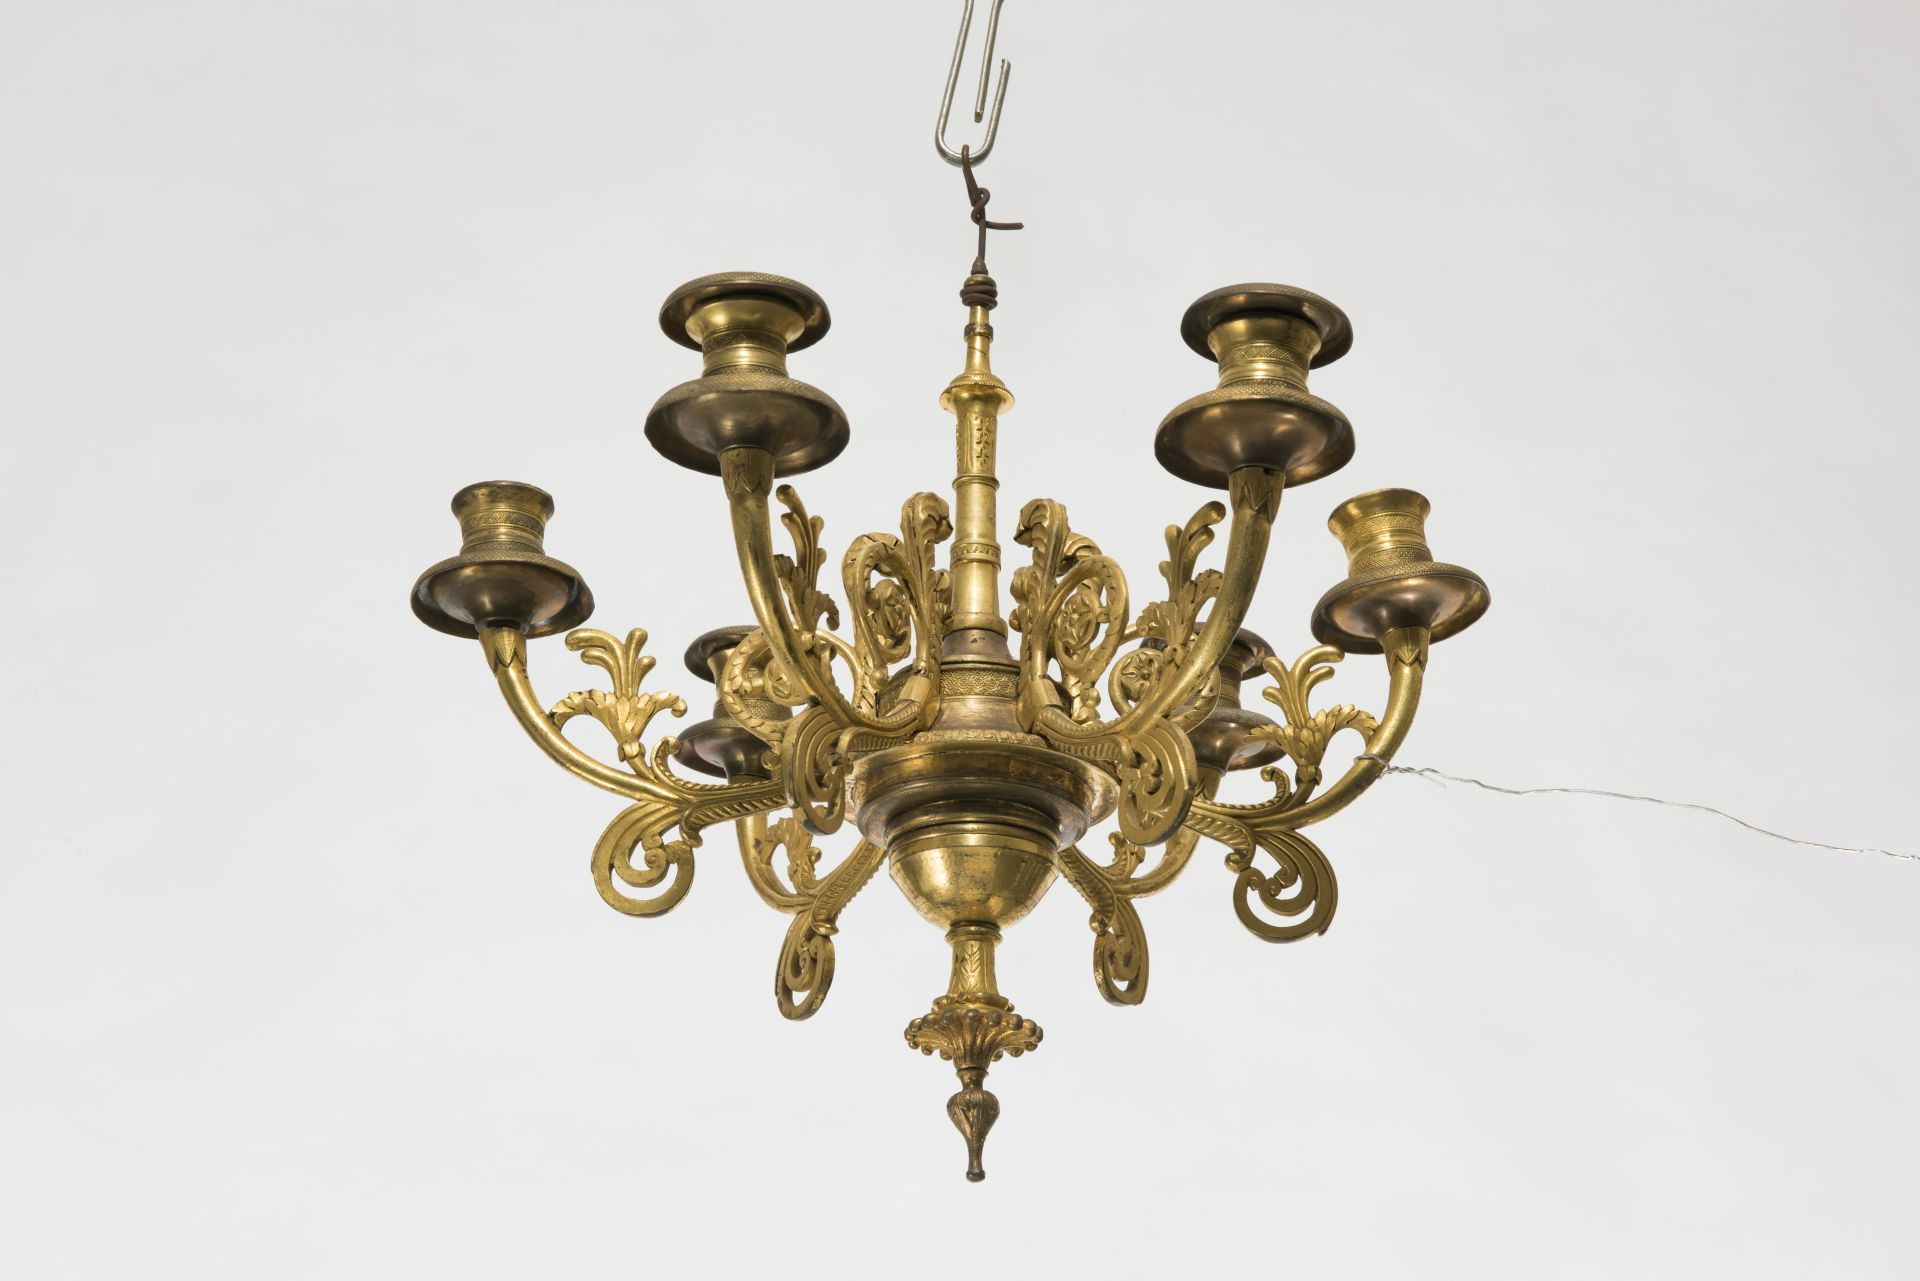 Chandelier, 1800–1849, National Museum of Lithuania, IM-4616. Photo by Kęstutis Stoškus, 2017